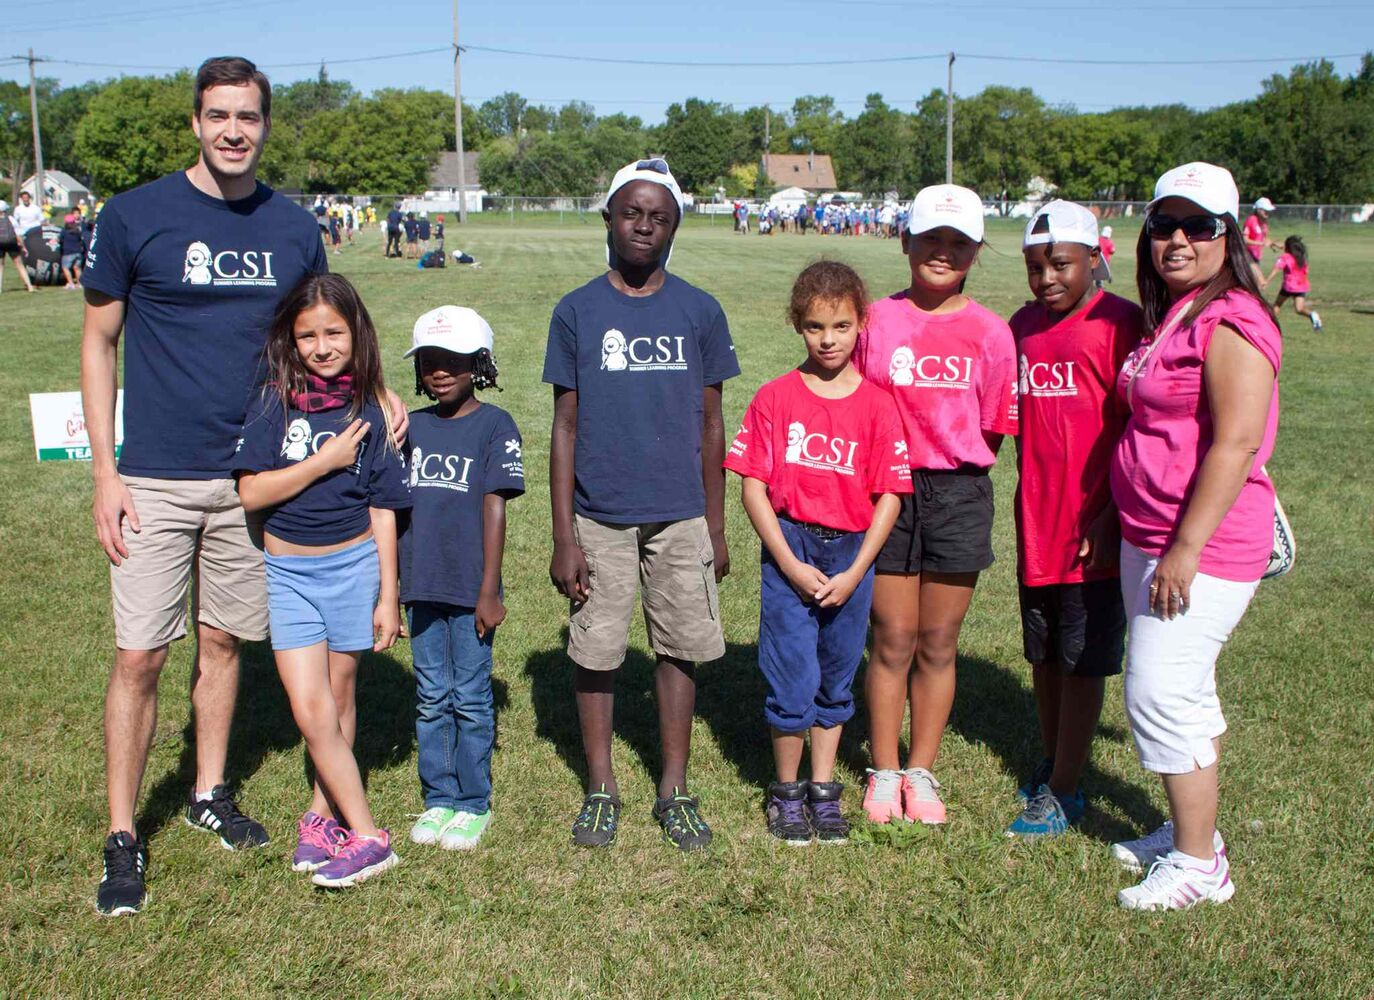 The second annual Canadian Jumpstart Games were held at Sinclair Park Community Centre on July 30, 2015. Hundreds of children from Boys and Girls Clubs of Winnipeg's community school investigators (CSI) program took part. The children were from 14 different schools in Winnipeg School Division. The games are sponsored and supported by Canadian Tire and its associated store chains. Pictured, from left, are Mitch Ferreira, Jordan, Therese, Hamed, Demi, Priskila, Nicholas and Kamal Saggi. (JOHN JOHNSTON FOR THE WINNIPEG FREE PRESS)